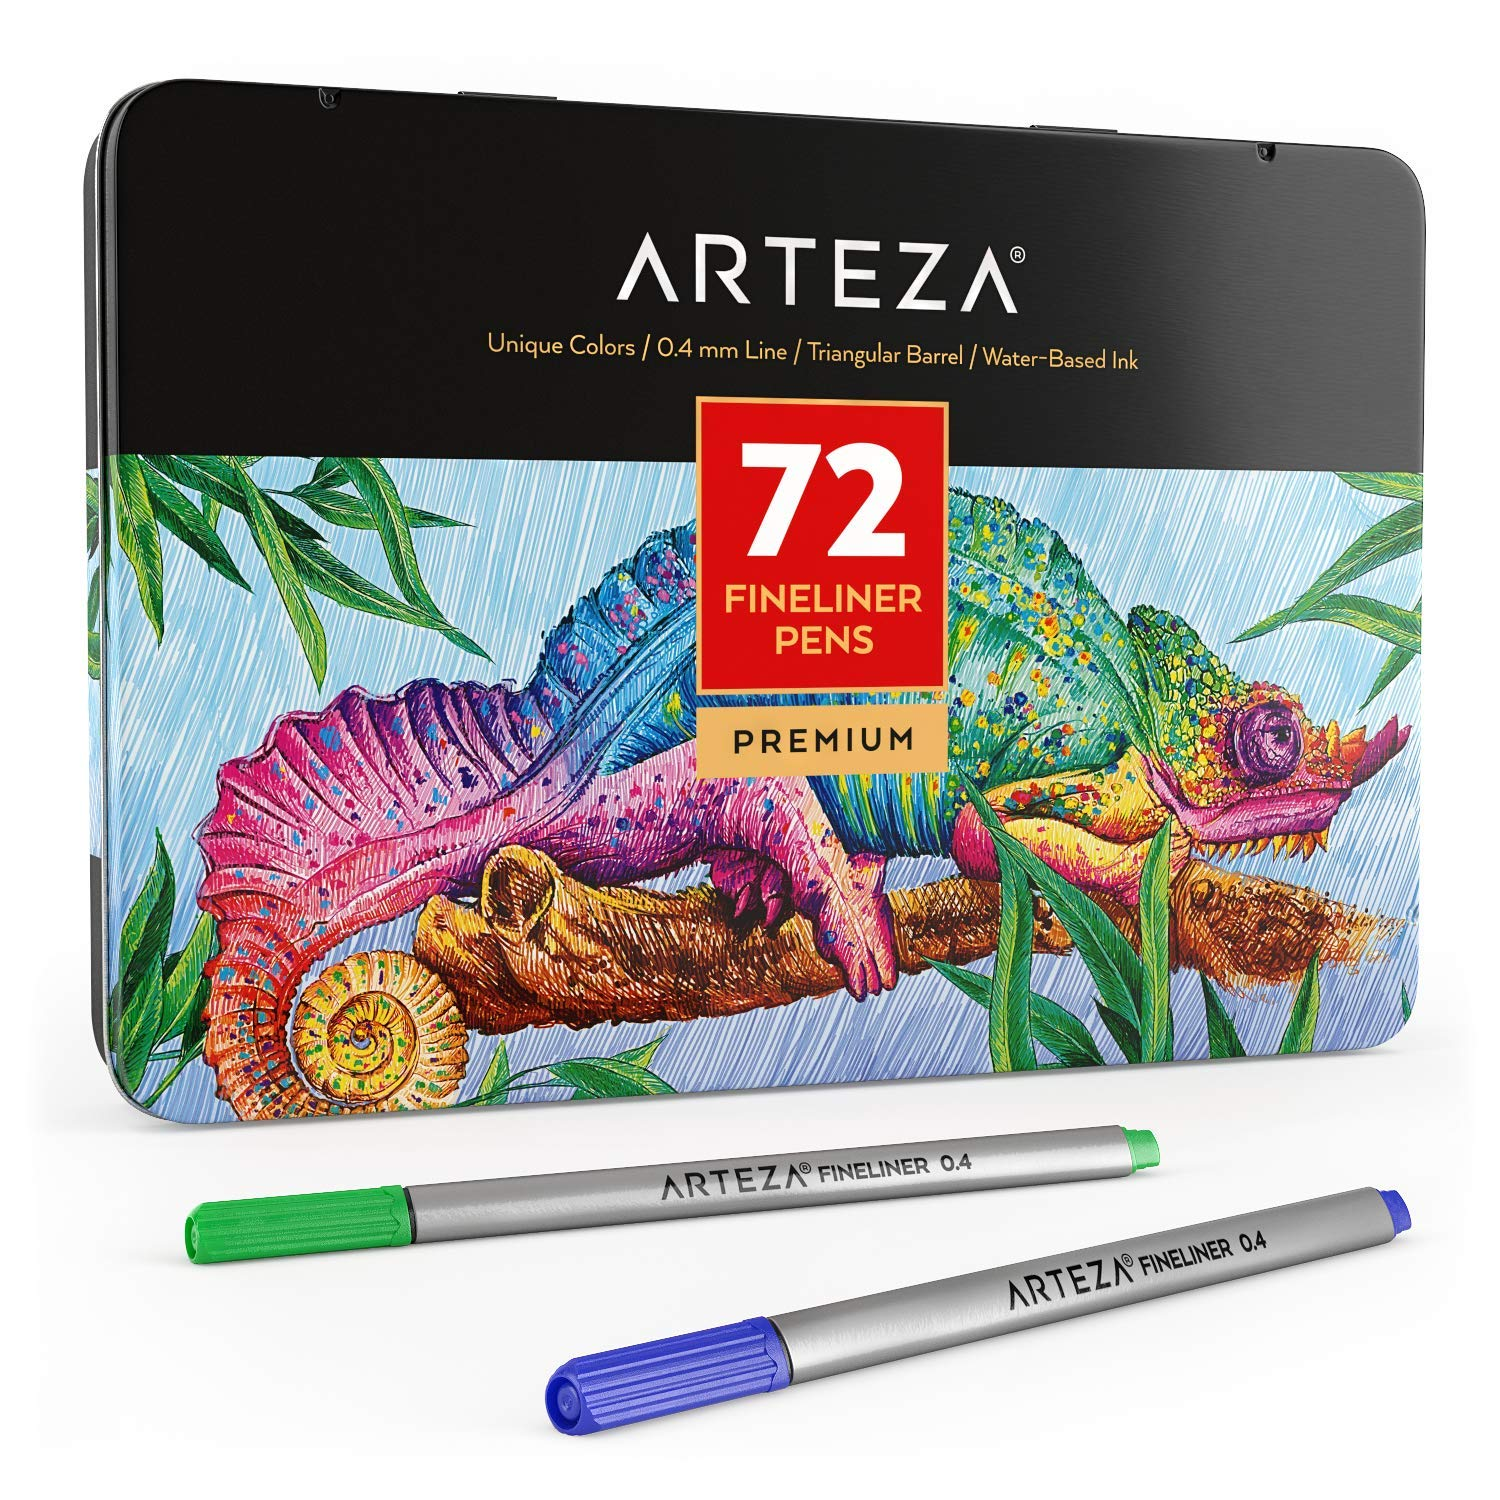 ARTEZA Fineliners Fine Point Pens, Set of 72 Fine Tip Markers with 0.4mm Tips & Sure Grip Ergonomic Barrels, Brilliant Assorted Colors for Coloring, Drawing & Detailing + Sturdy Metal Storage Case by ARTEZA (Image #1)